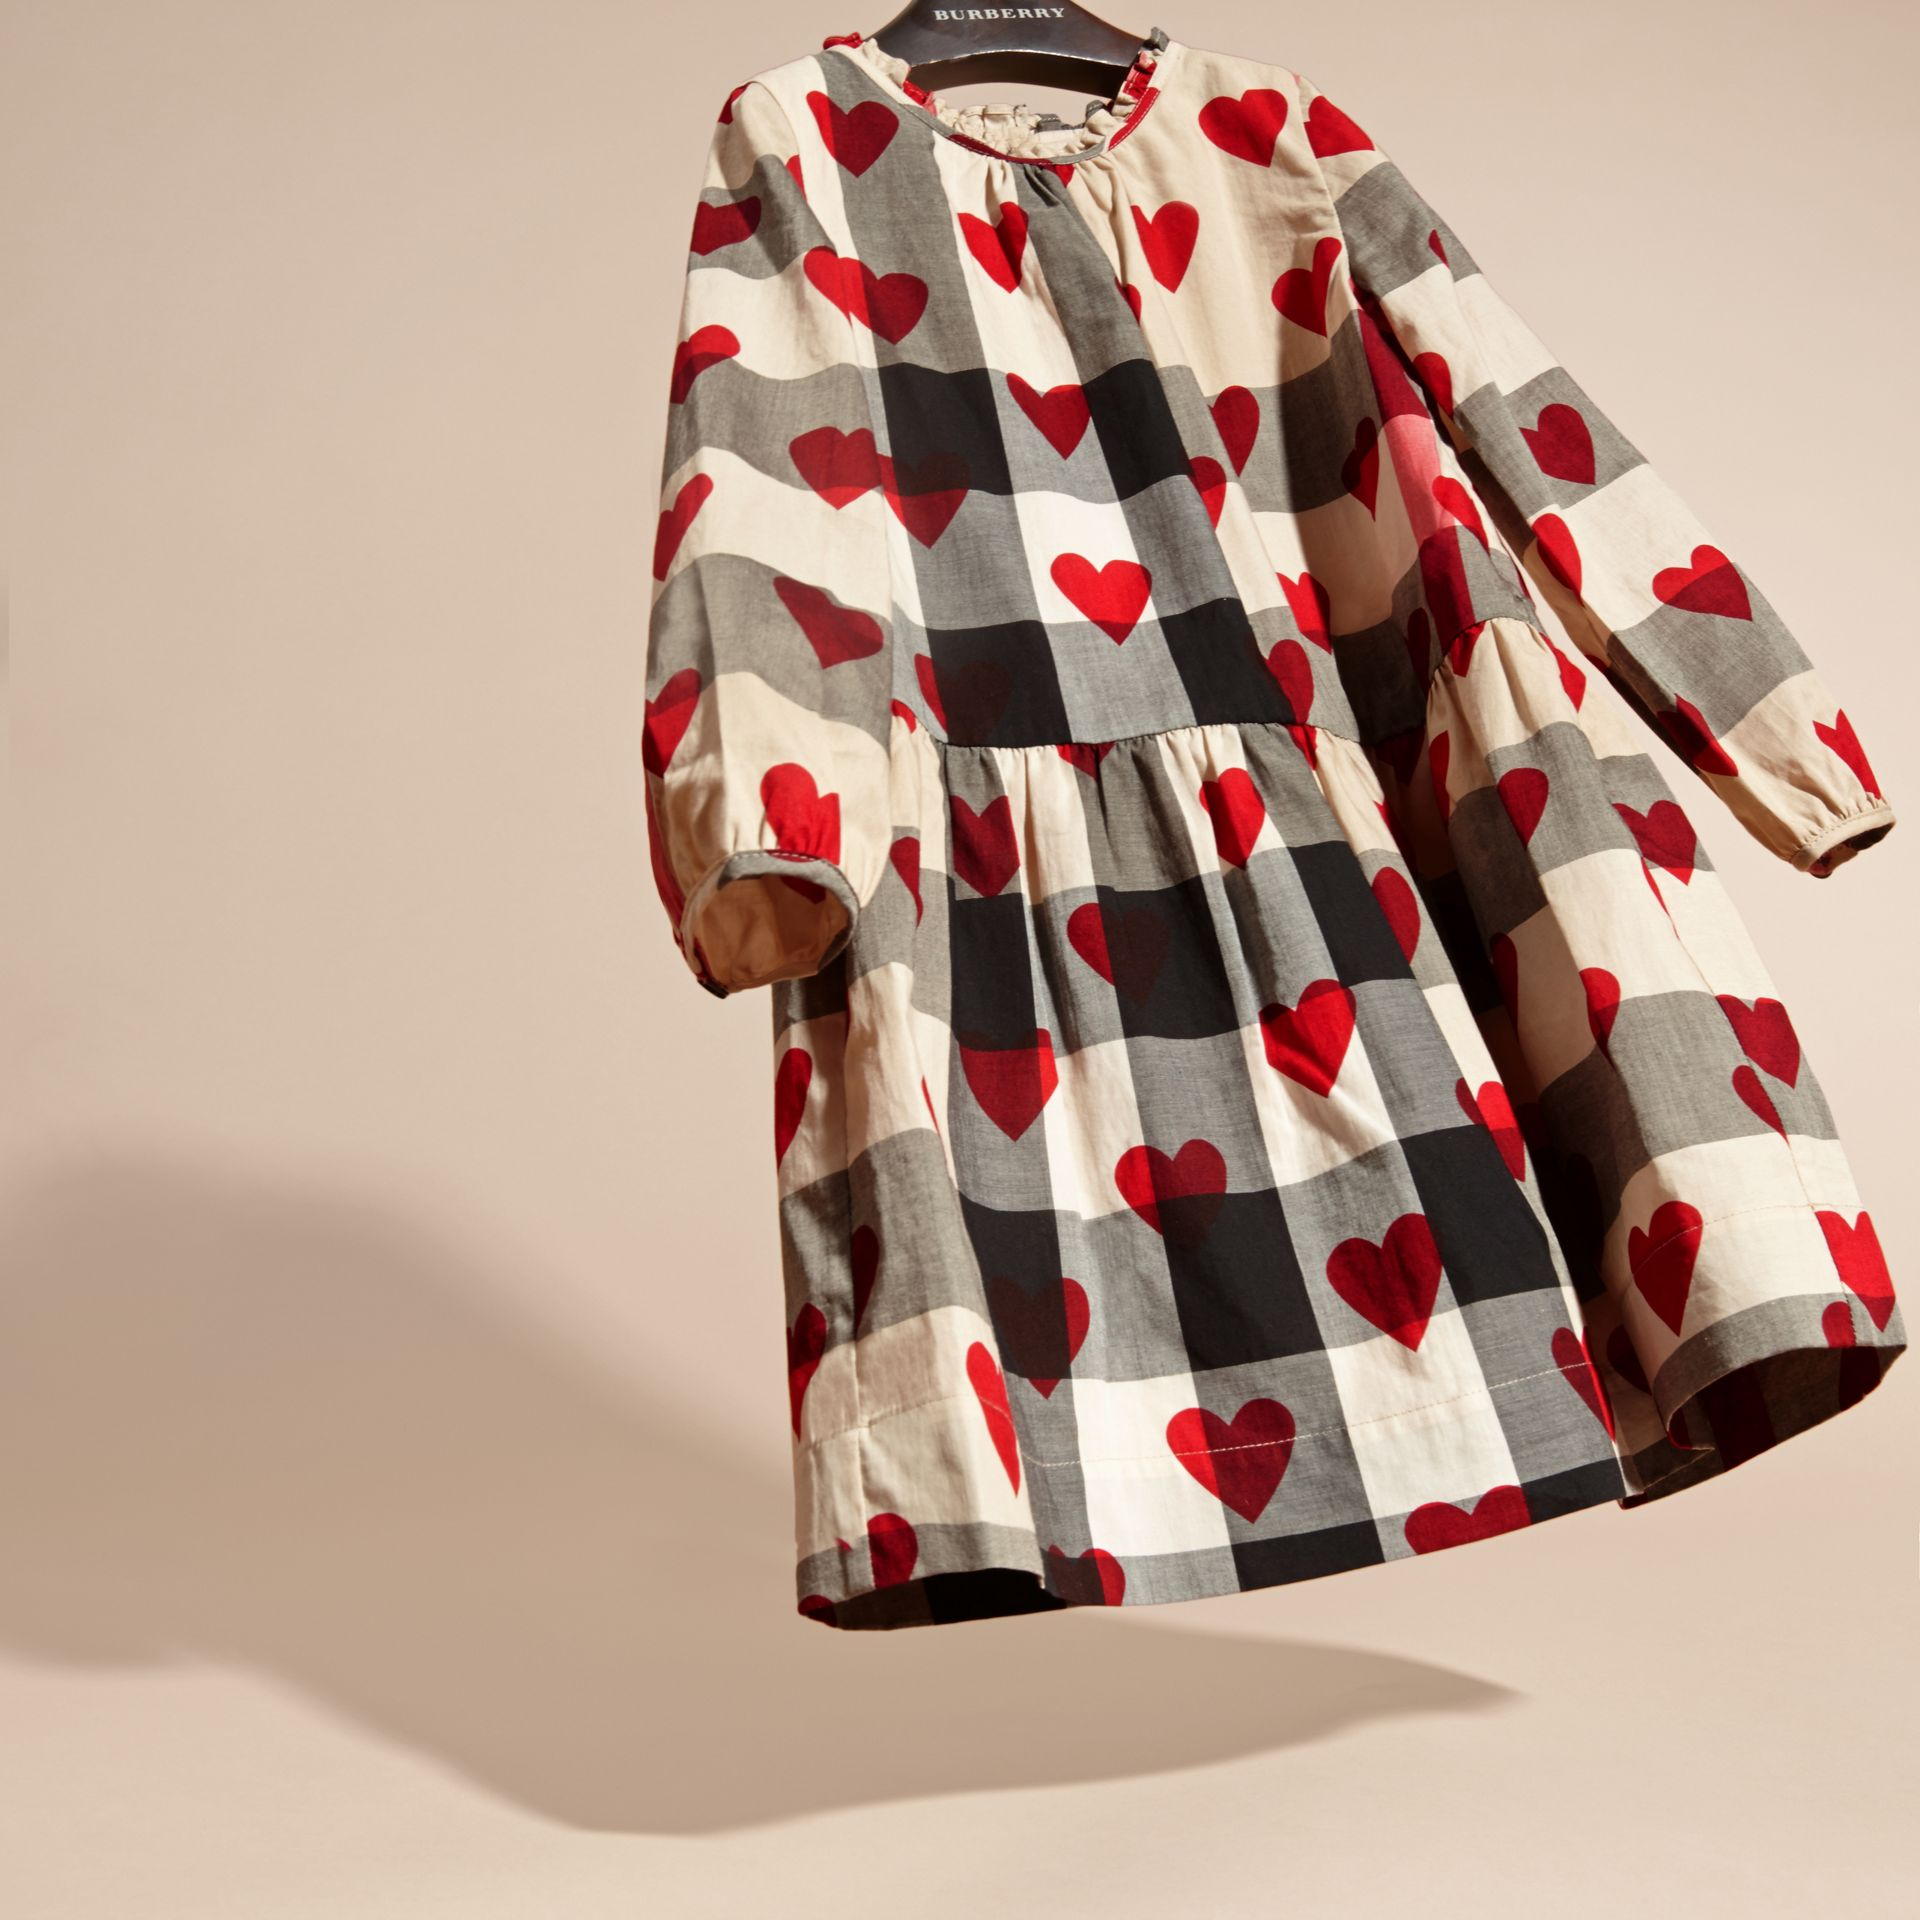 Parade red Check and Heart Print Cotton Tunic Dress - gallery image 3